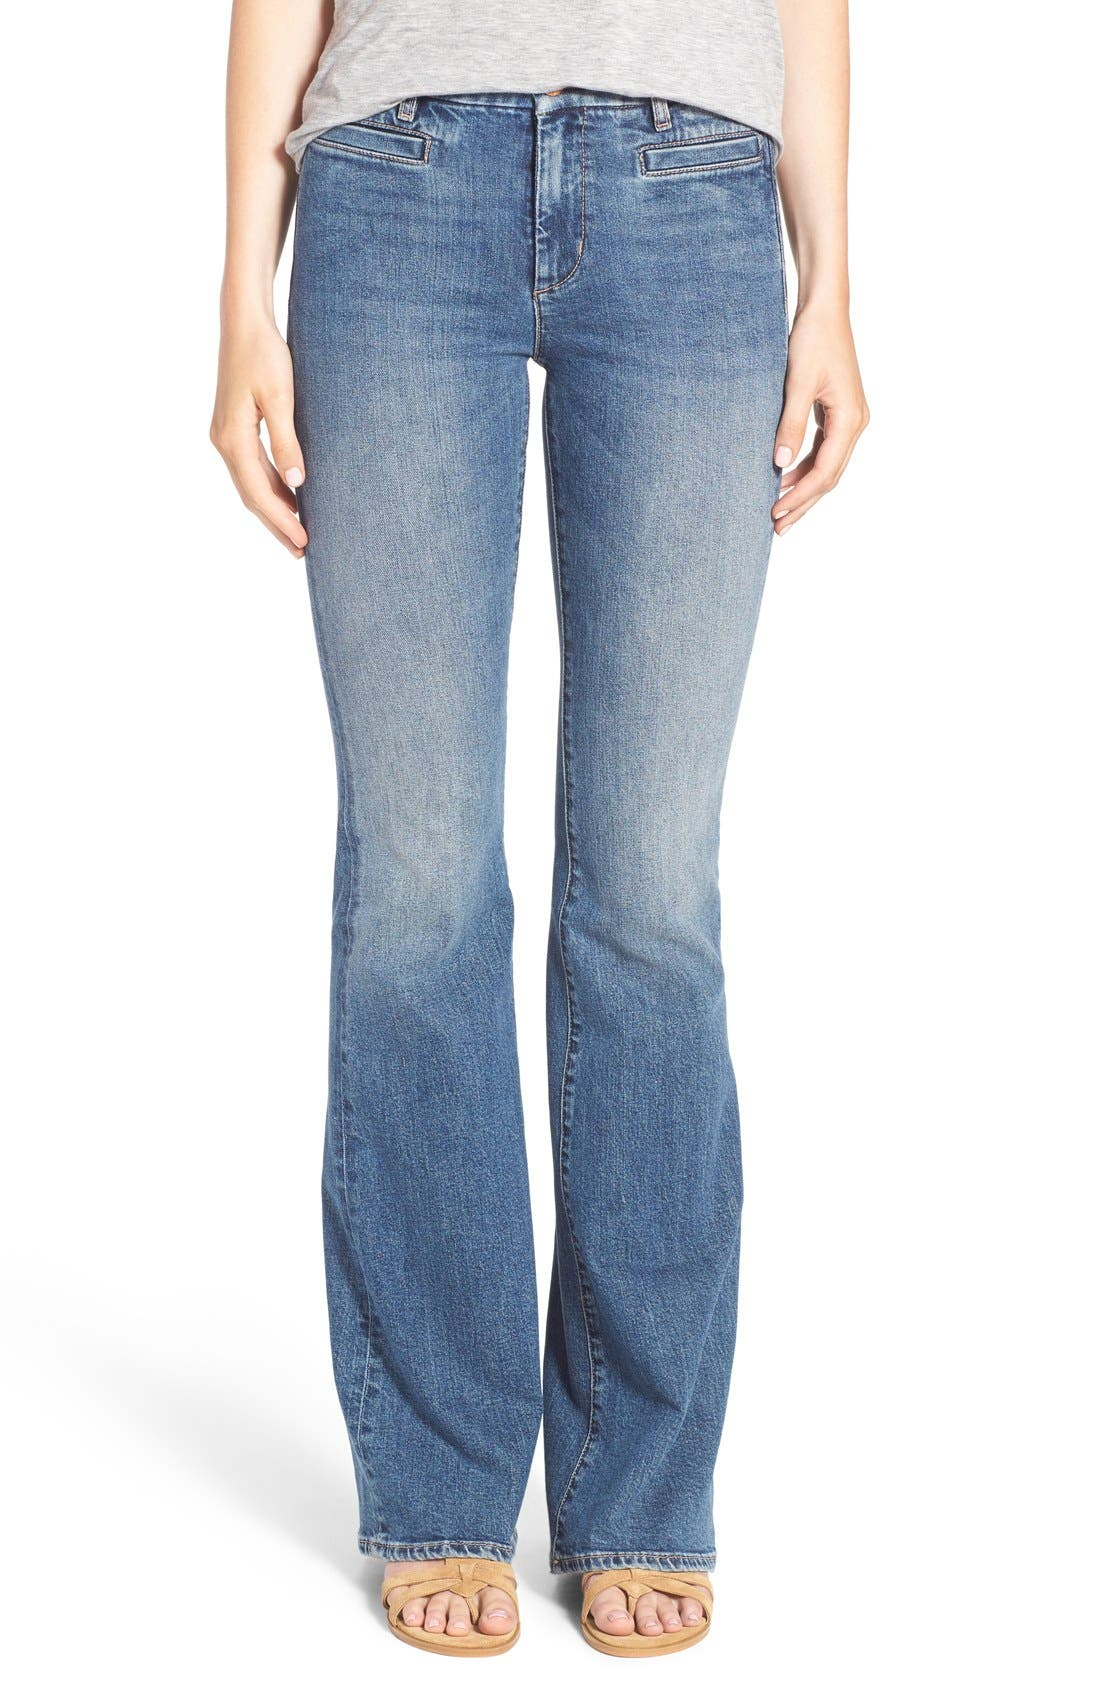 Alternate Image 1 Selected - M.i.h.Jeans 'Marrakesh' Flare Jeans